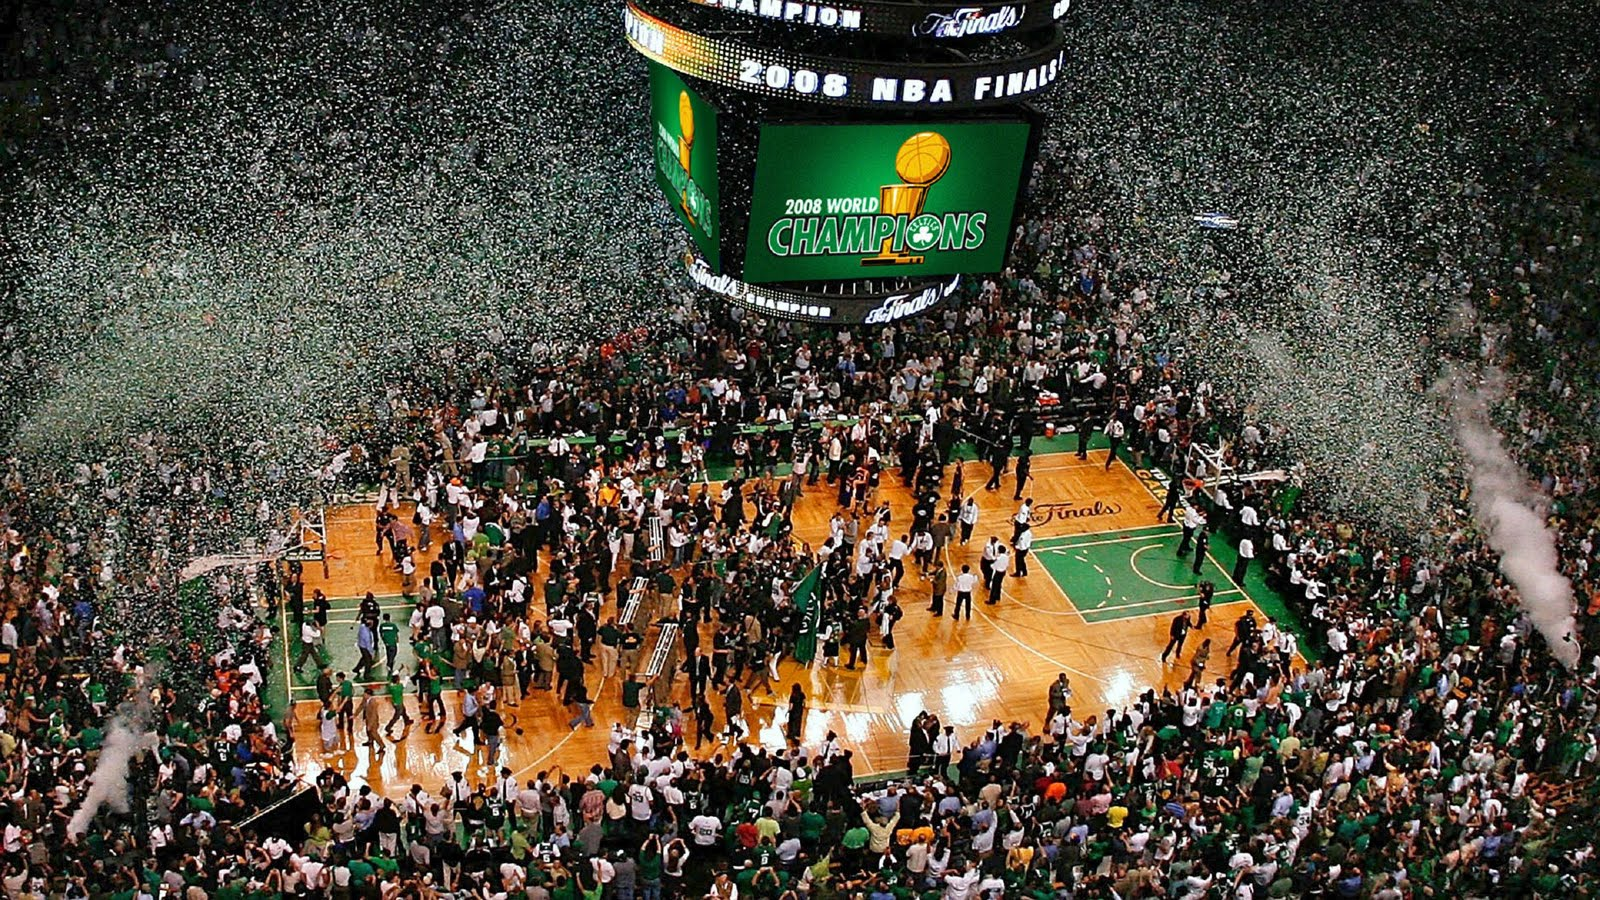 http://2.bp.blogspot.com/-EeG2nZKMkeU/TiWDlopPjKI/AAAAAAAAA88/rRIJ5Daw7Cs/s1600/Boston_celtic_champion.jpg